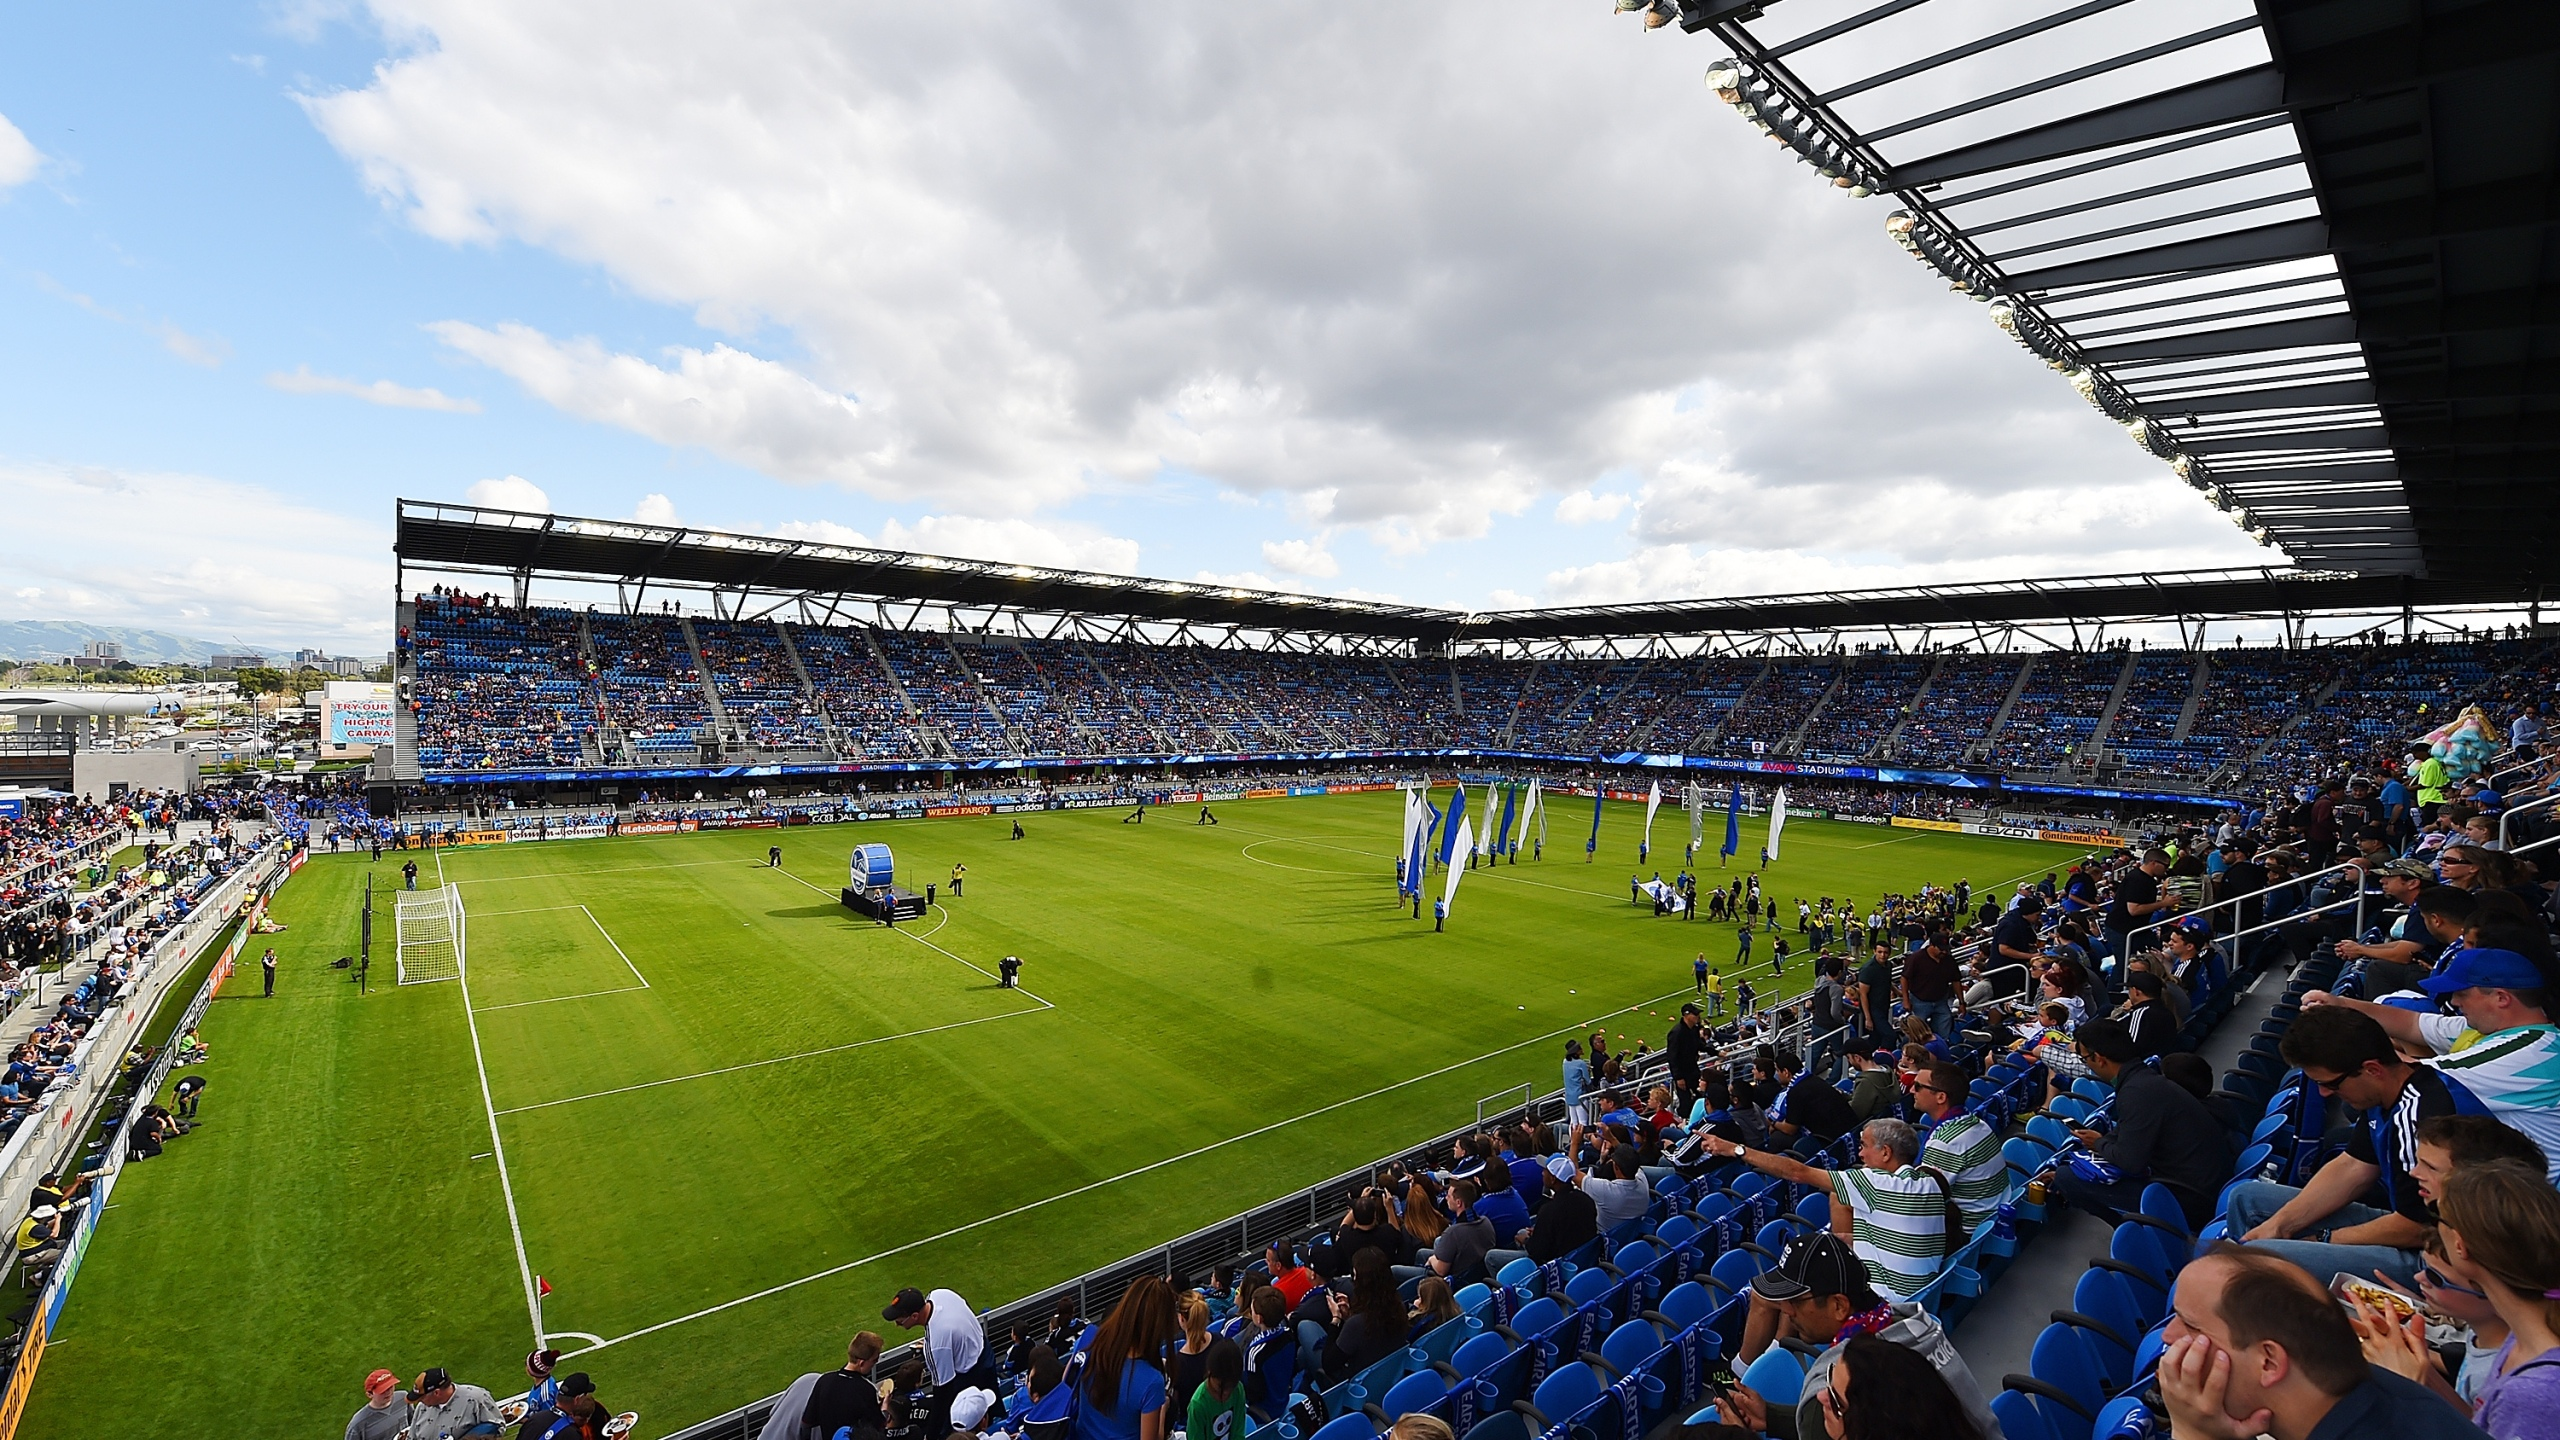 This March 22, 2015 file photo shows a general view of PayPal Park before an MLS game in San Jose, California. (Thearon W. Henderson/Getty Images)